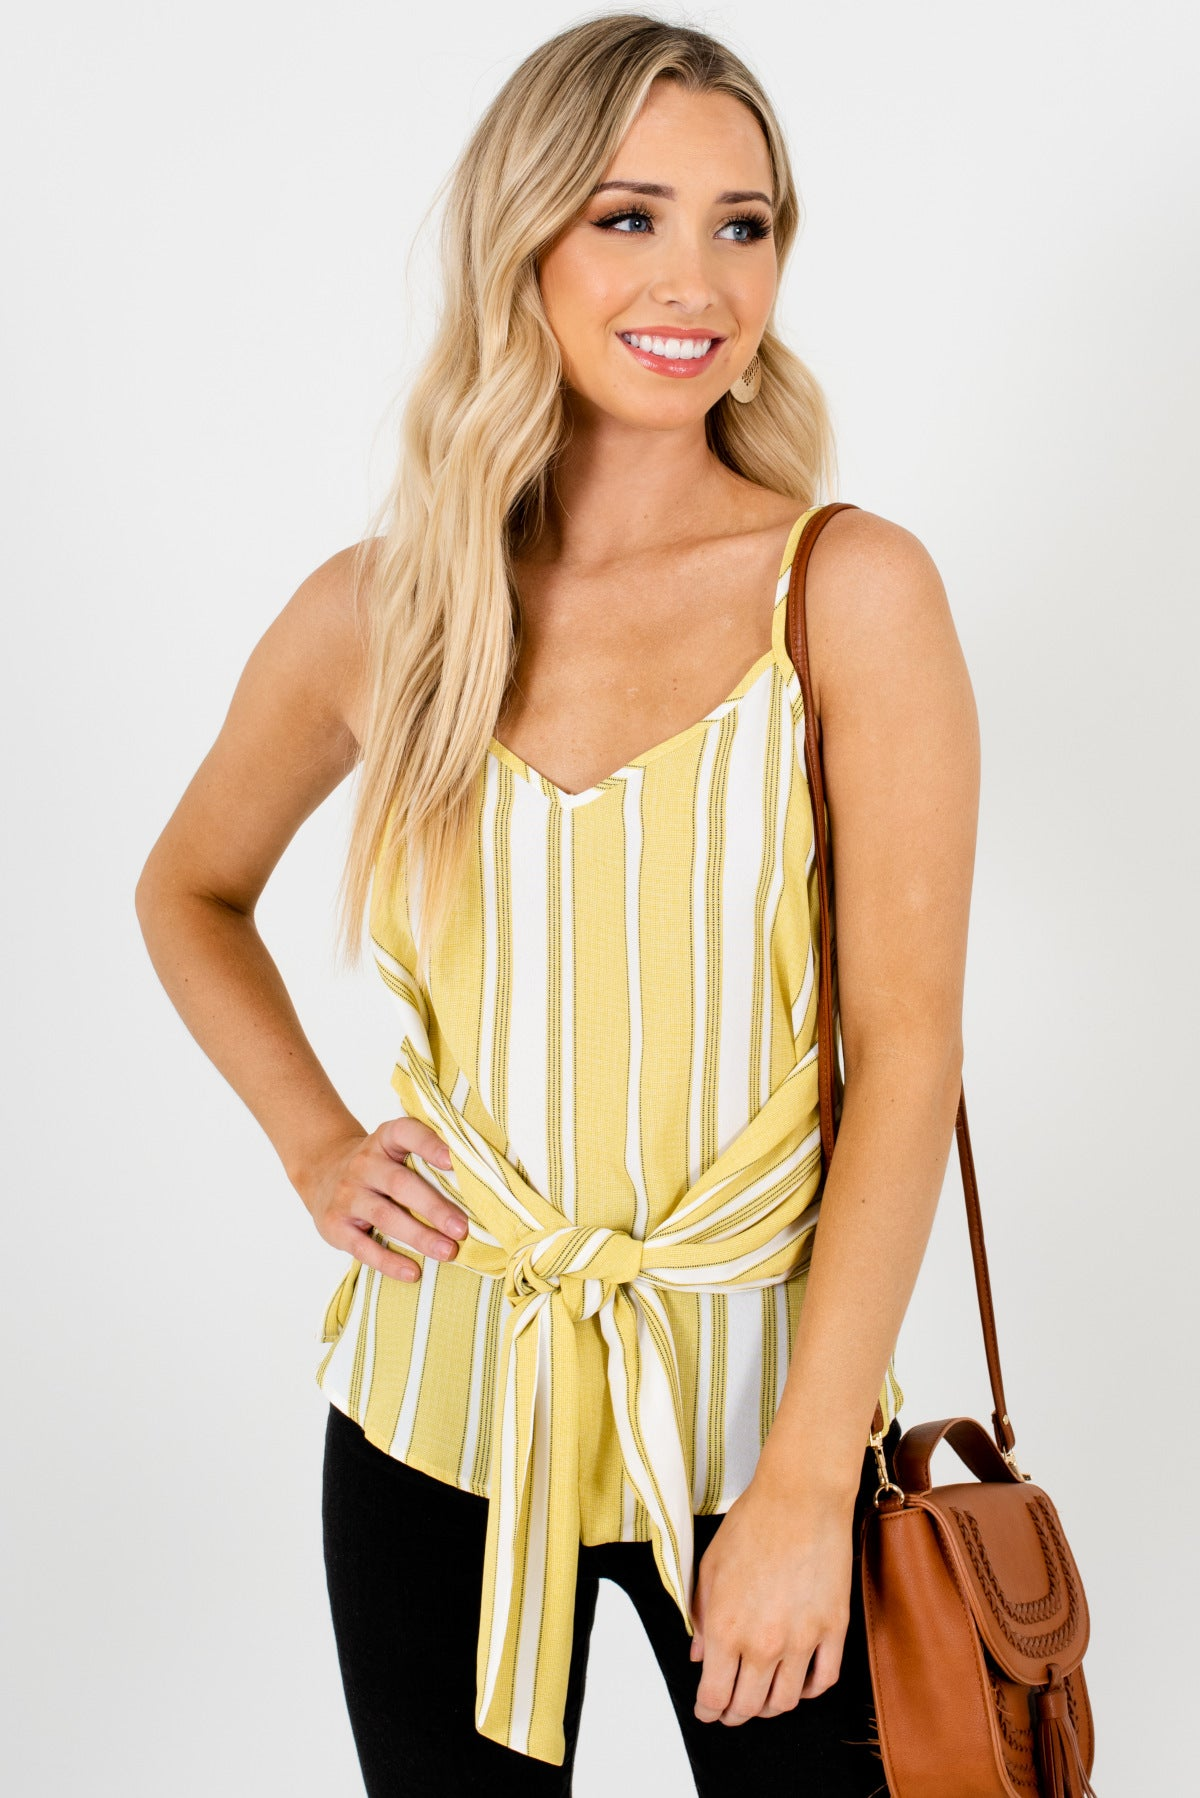 29d9a5b2b5a54 Yellow-Green Striped Patterned Boutique Tank Tops for Women